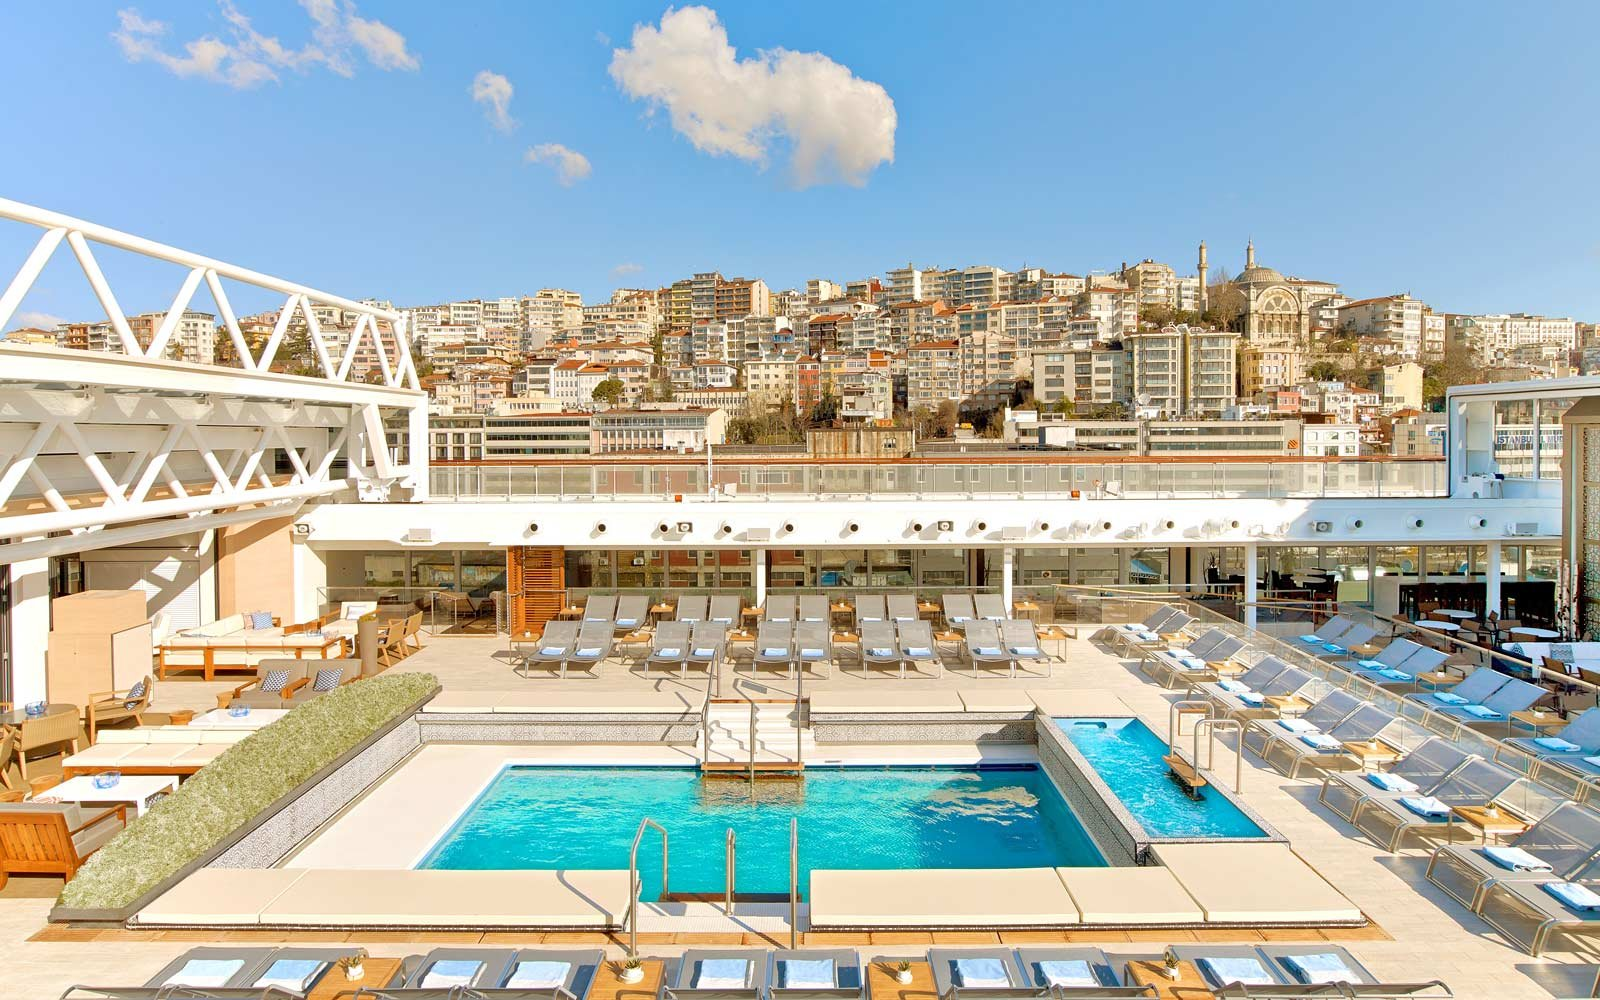 five things to know about viking ocean cruises' star cruise ship